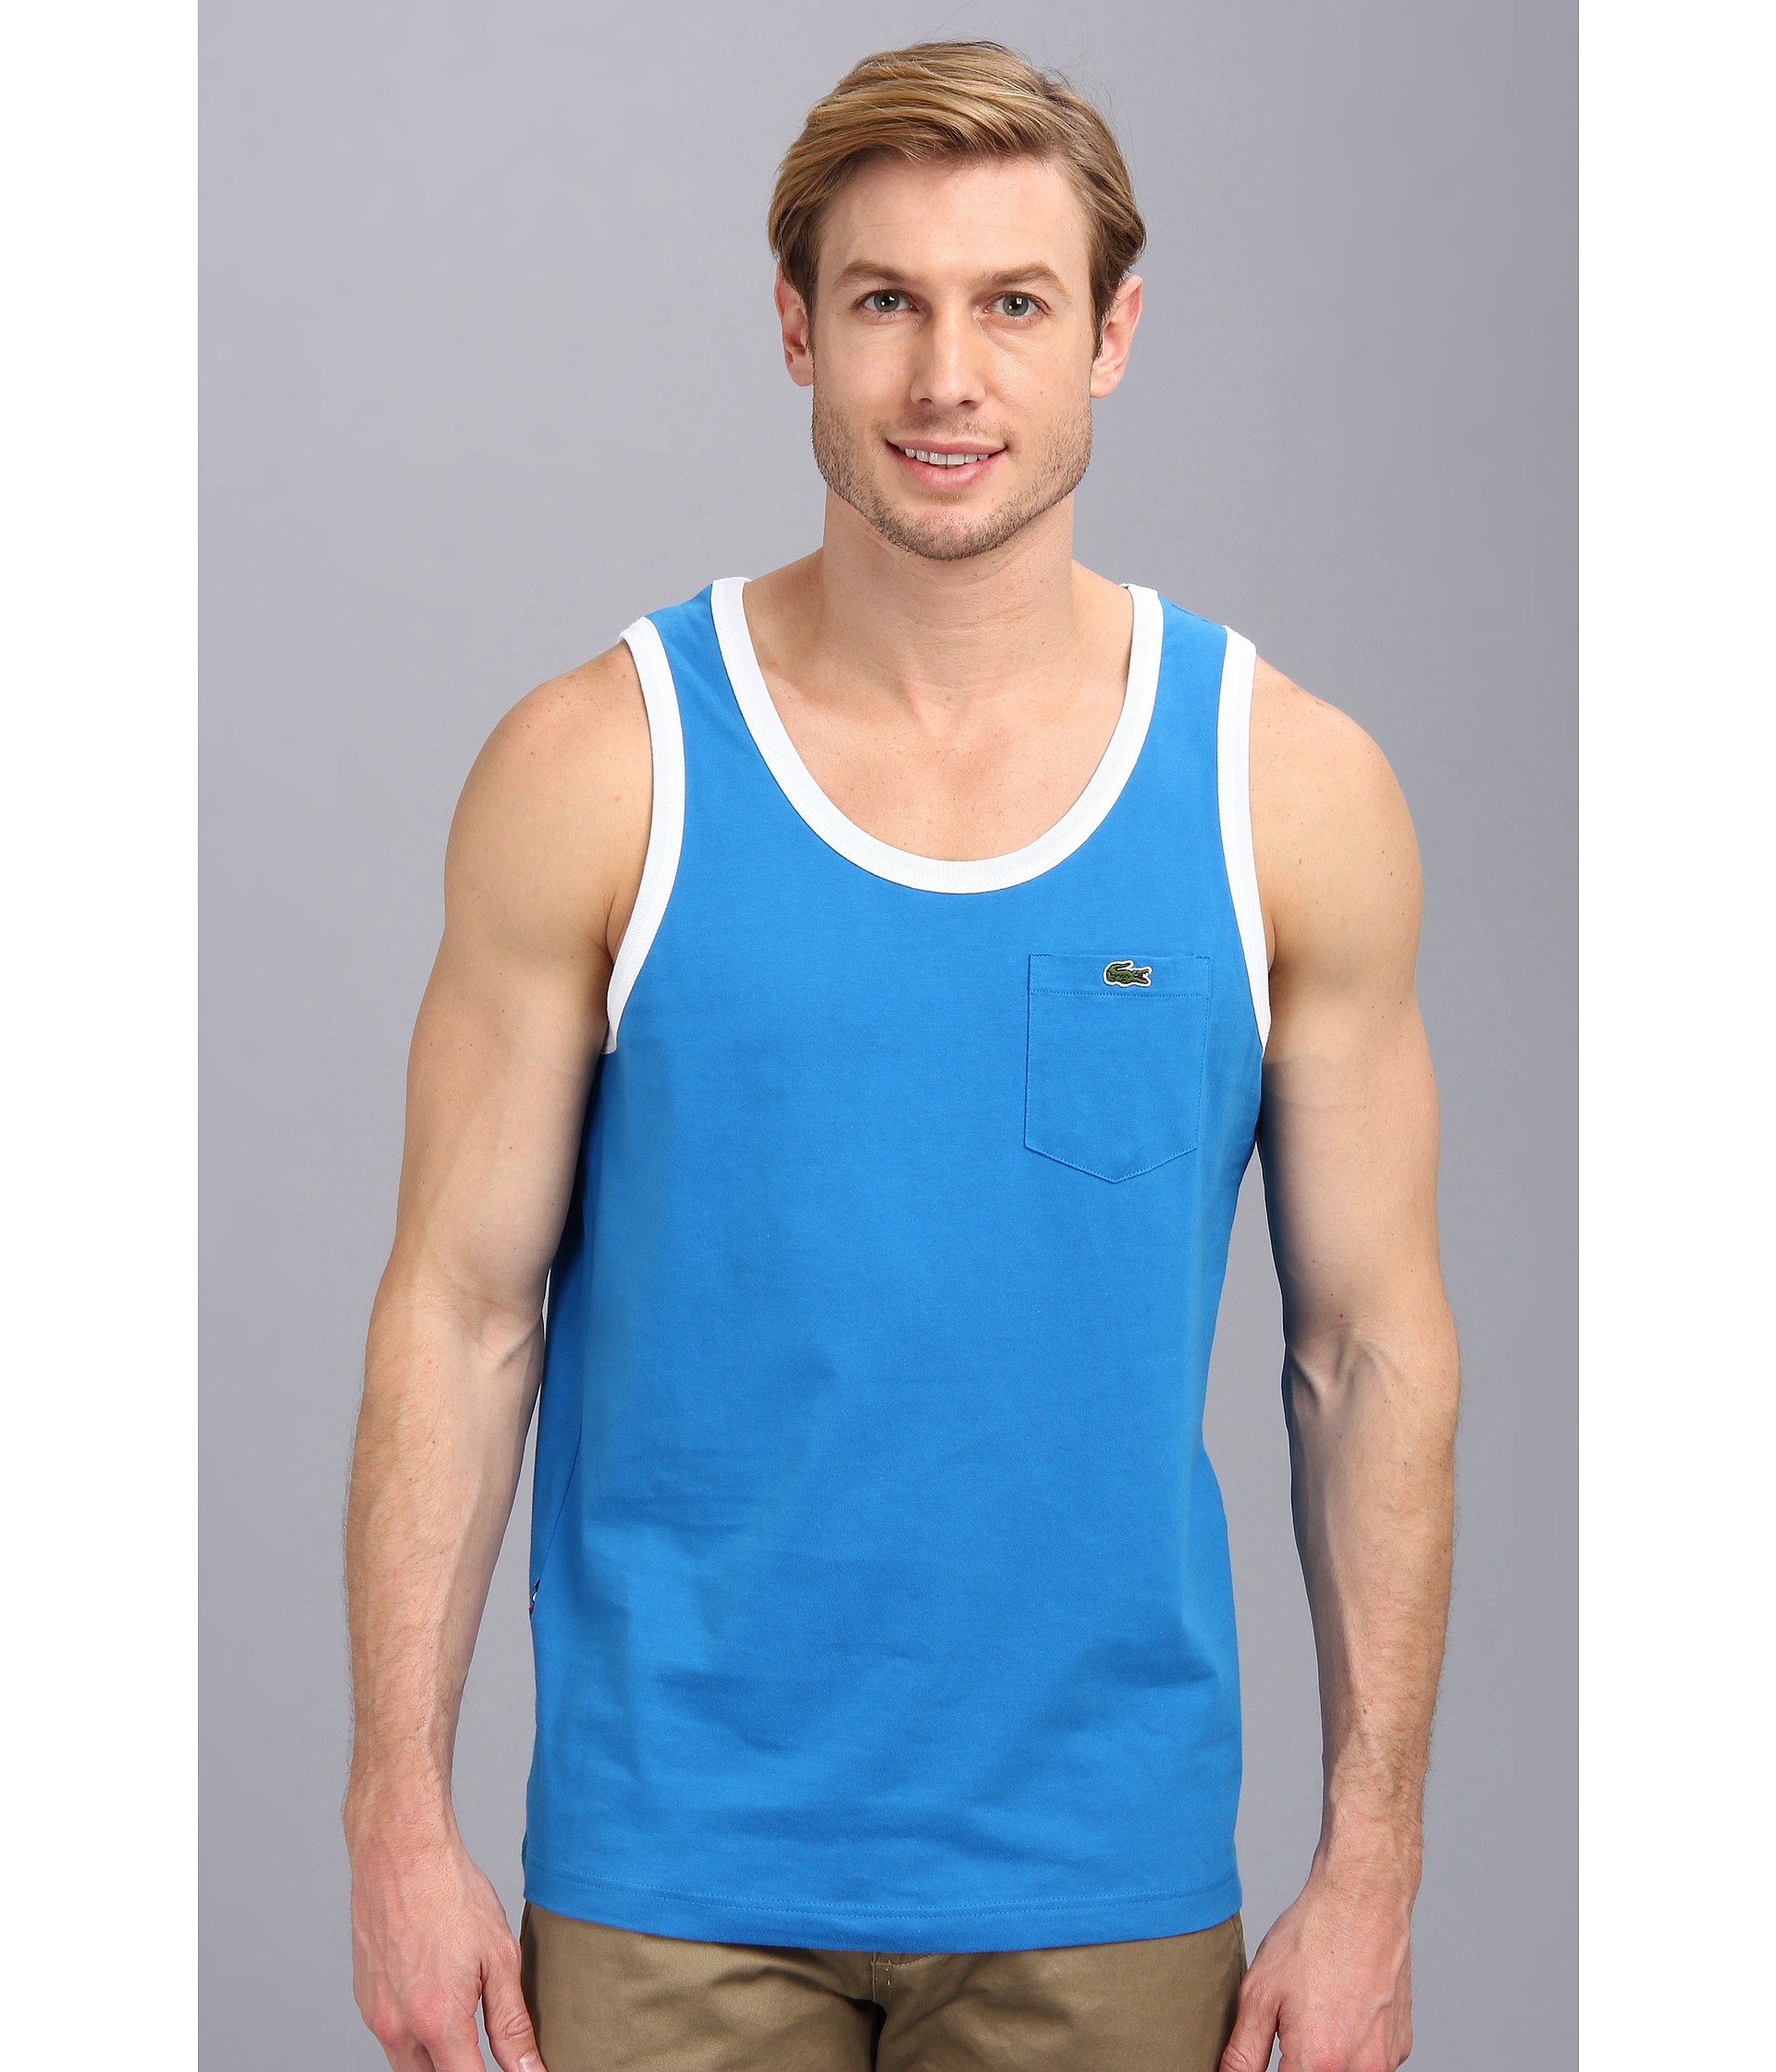 a71a9a508165d Lyst - Lacoste Live Cotton Jersey with Contrast Trim Tank Top in ...